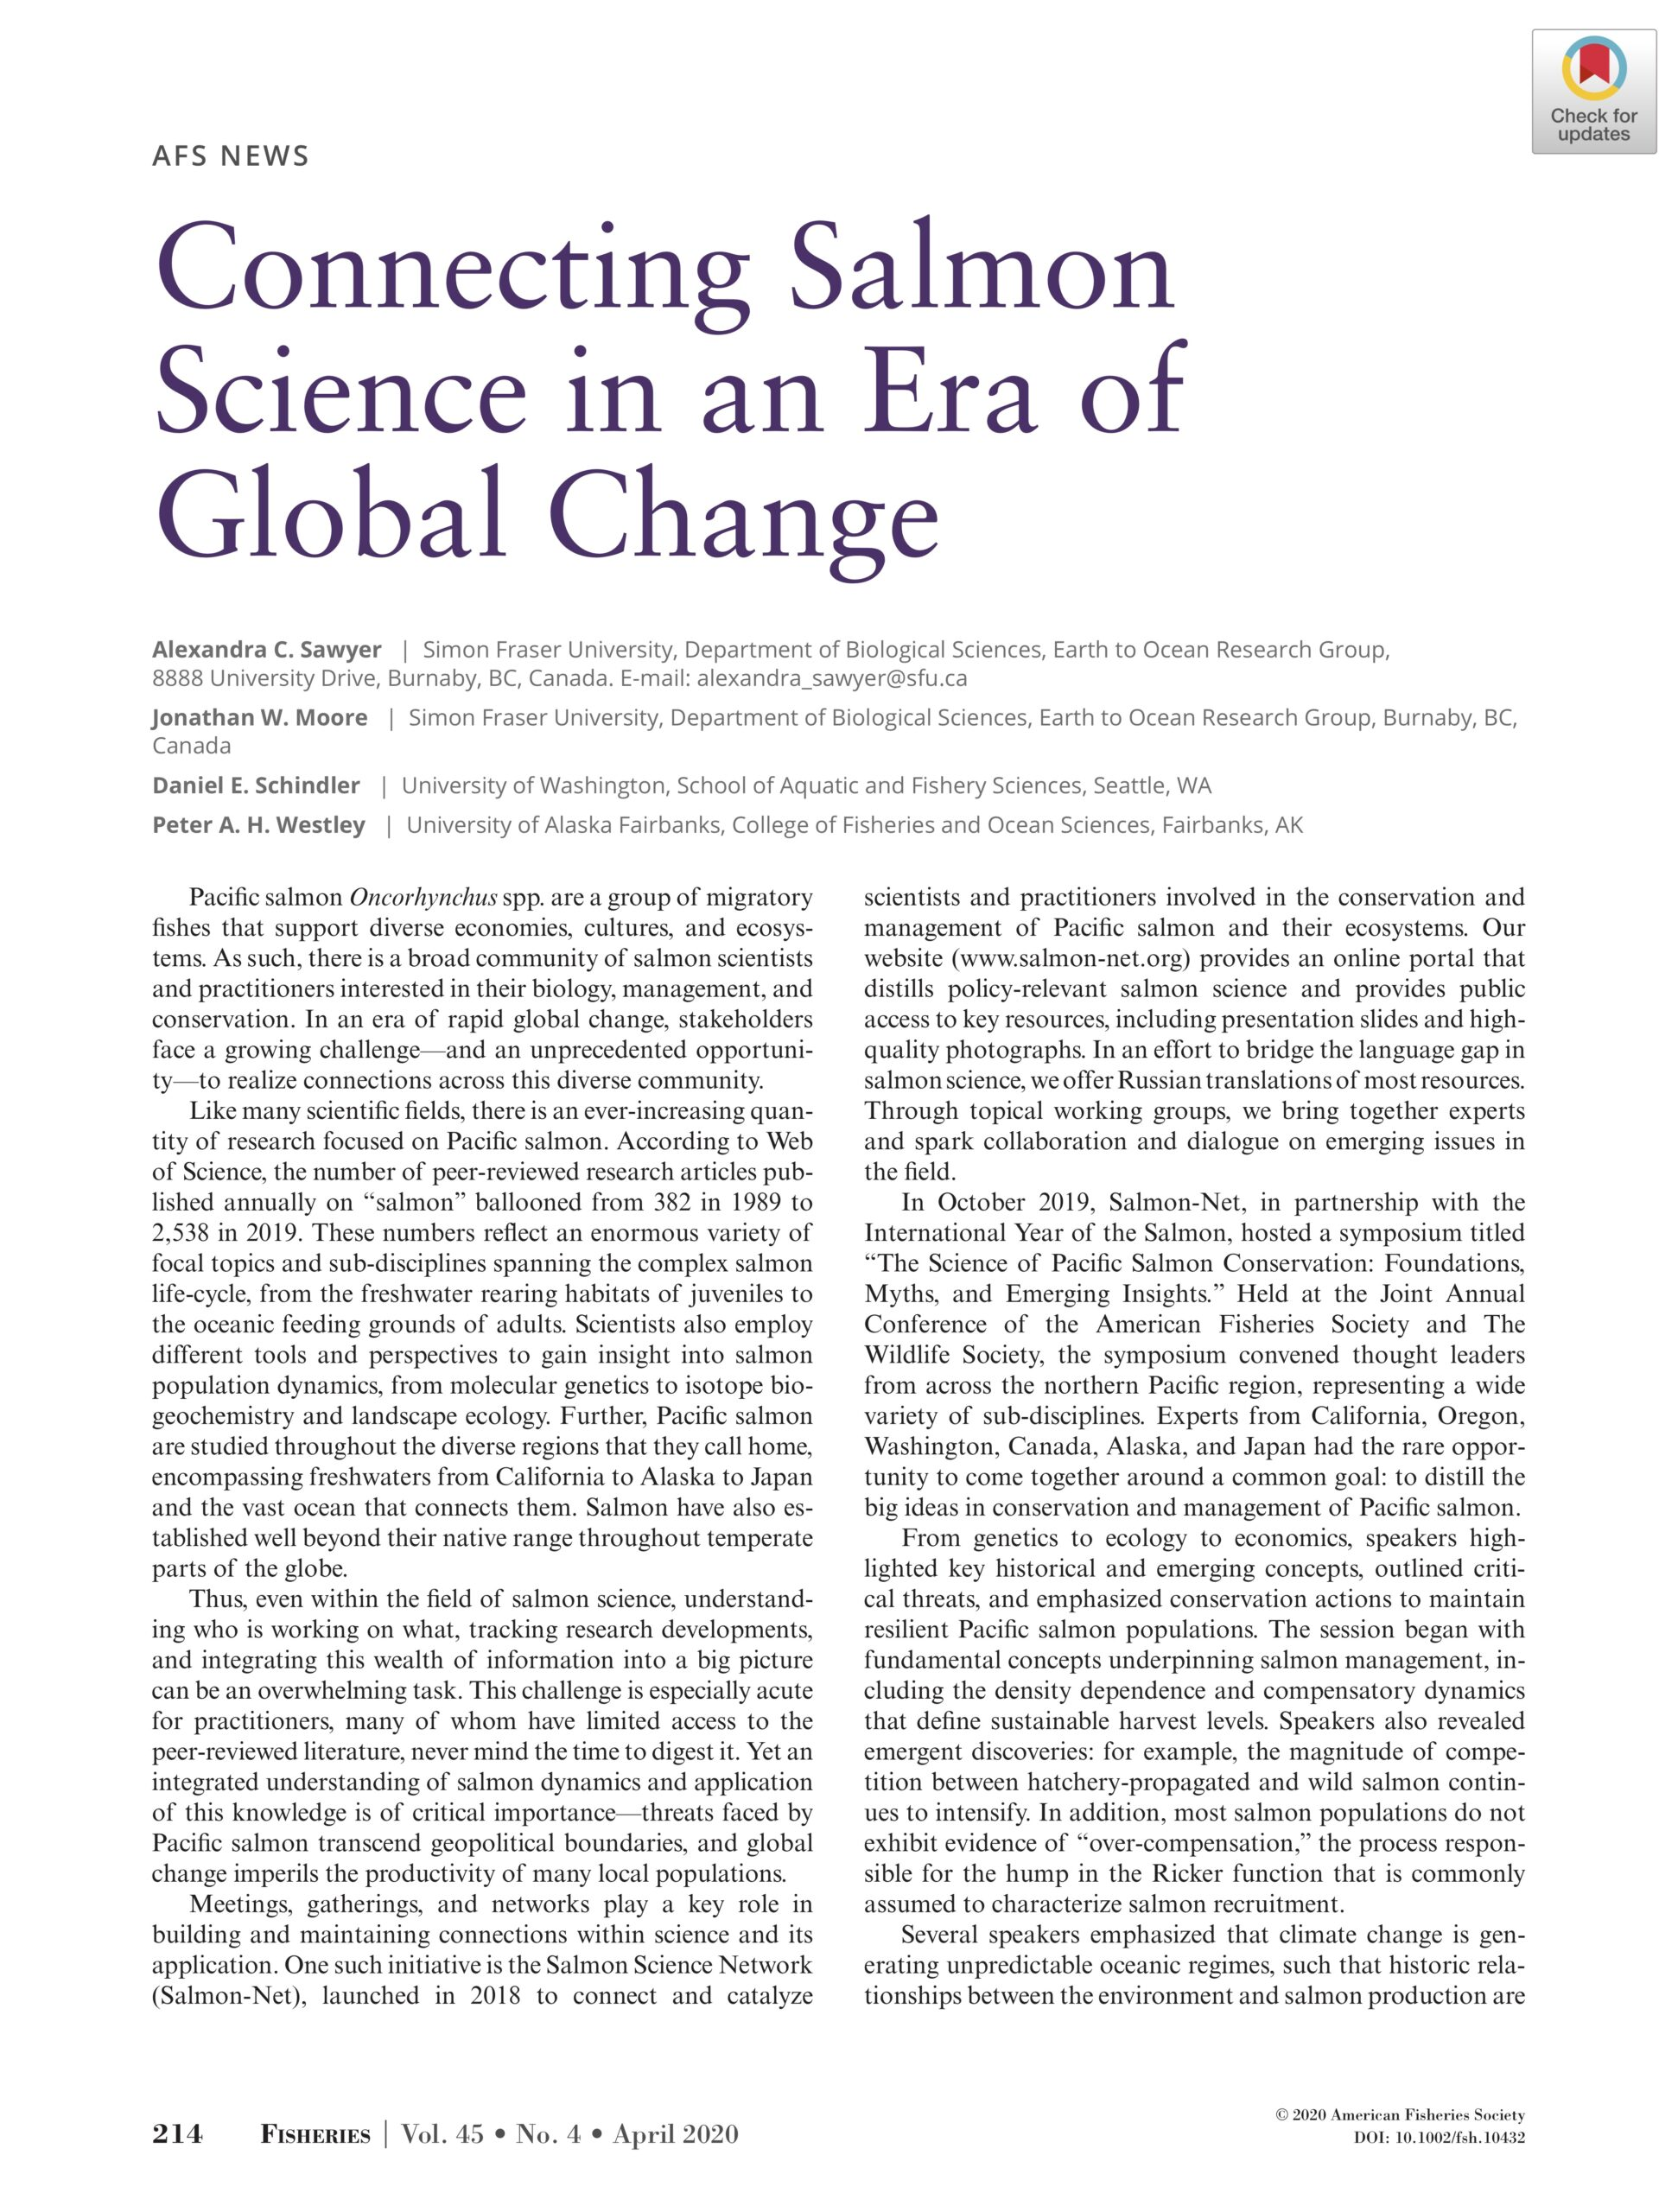 Sawyer et al. 2020: Connecting salmon science in an era of global change